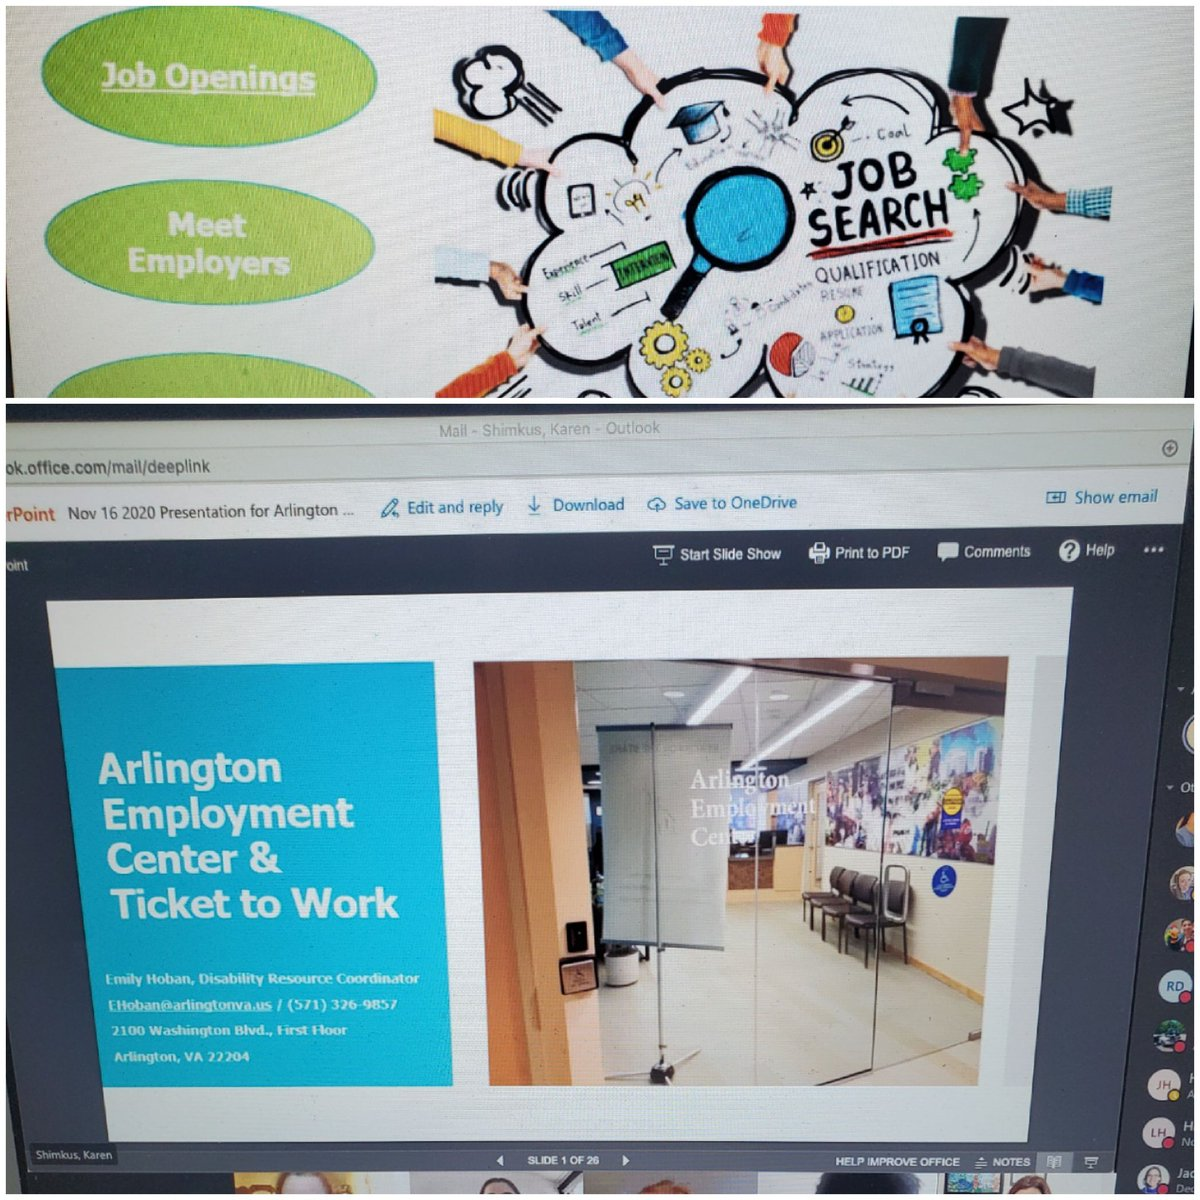 Thank you to Emily Hoban from the Arlington Employment Center for teaching our students in PEP about getting a job! <a target='_blank' href='http://search.twitter.com/search?q=PEPupyourfuture'><a target='_blank' href='https://twitter.com/hashtag/PEPupyourfuture?src=hash'>#PEPupyourfuture</a></a> <a target='_blank' href='http://twitter.com/APSCareerCenter'>@APSCareerCenter</a> <a target='_blank' href='https://t.co/sPqvmDbkb8'>https://t.co/sPqvmDbkb8</a>